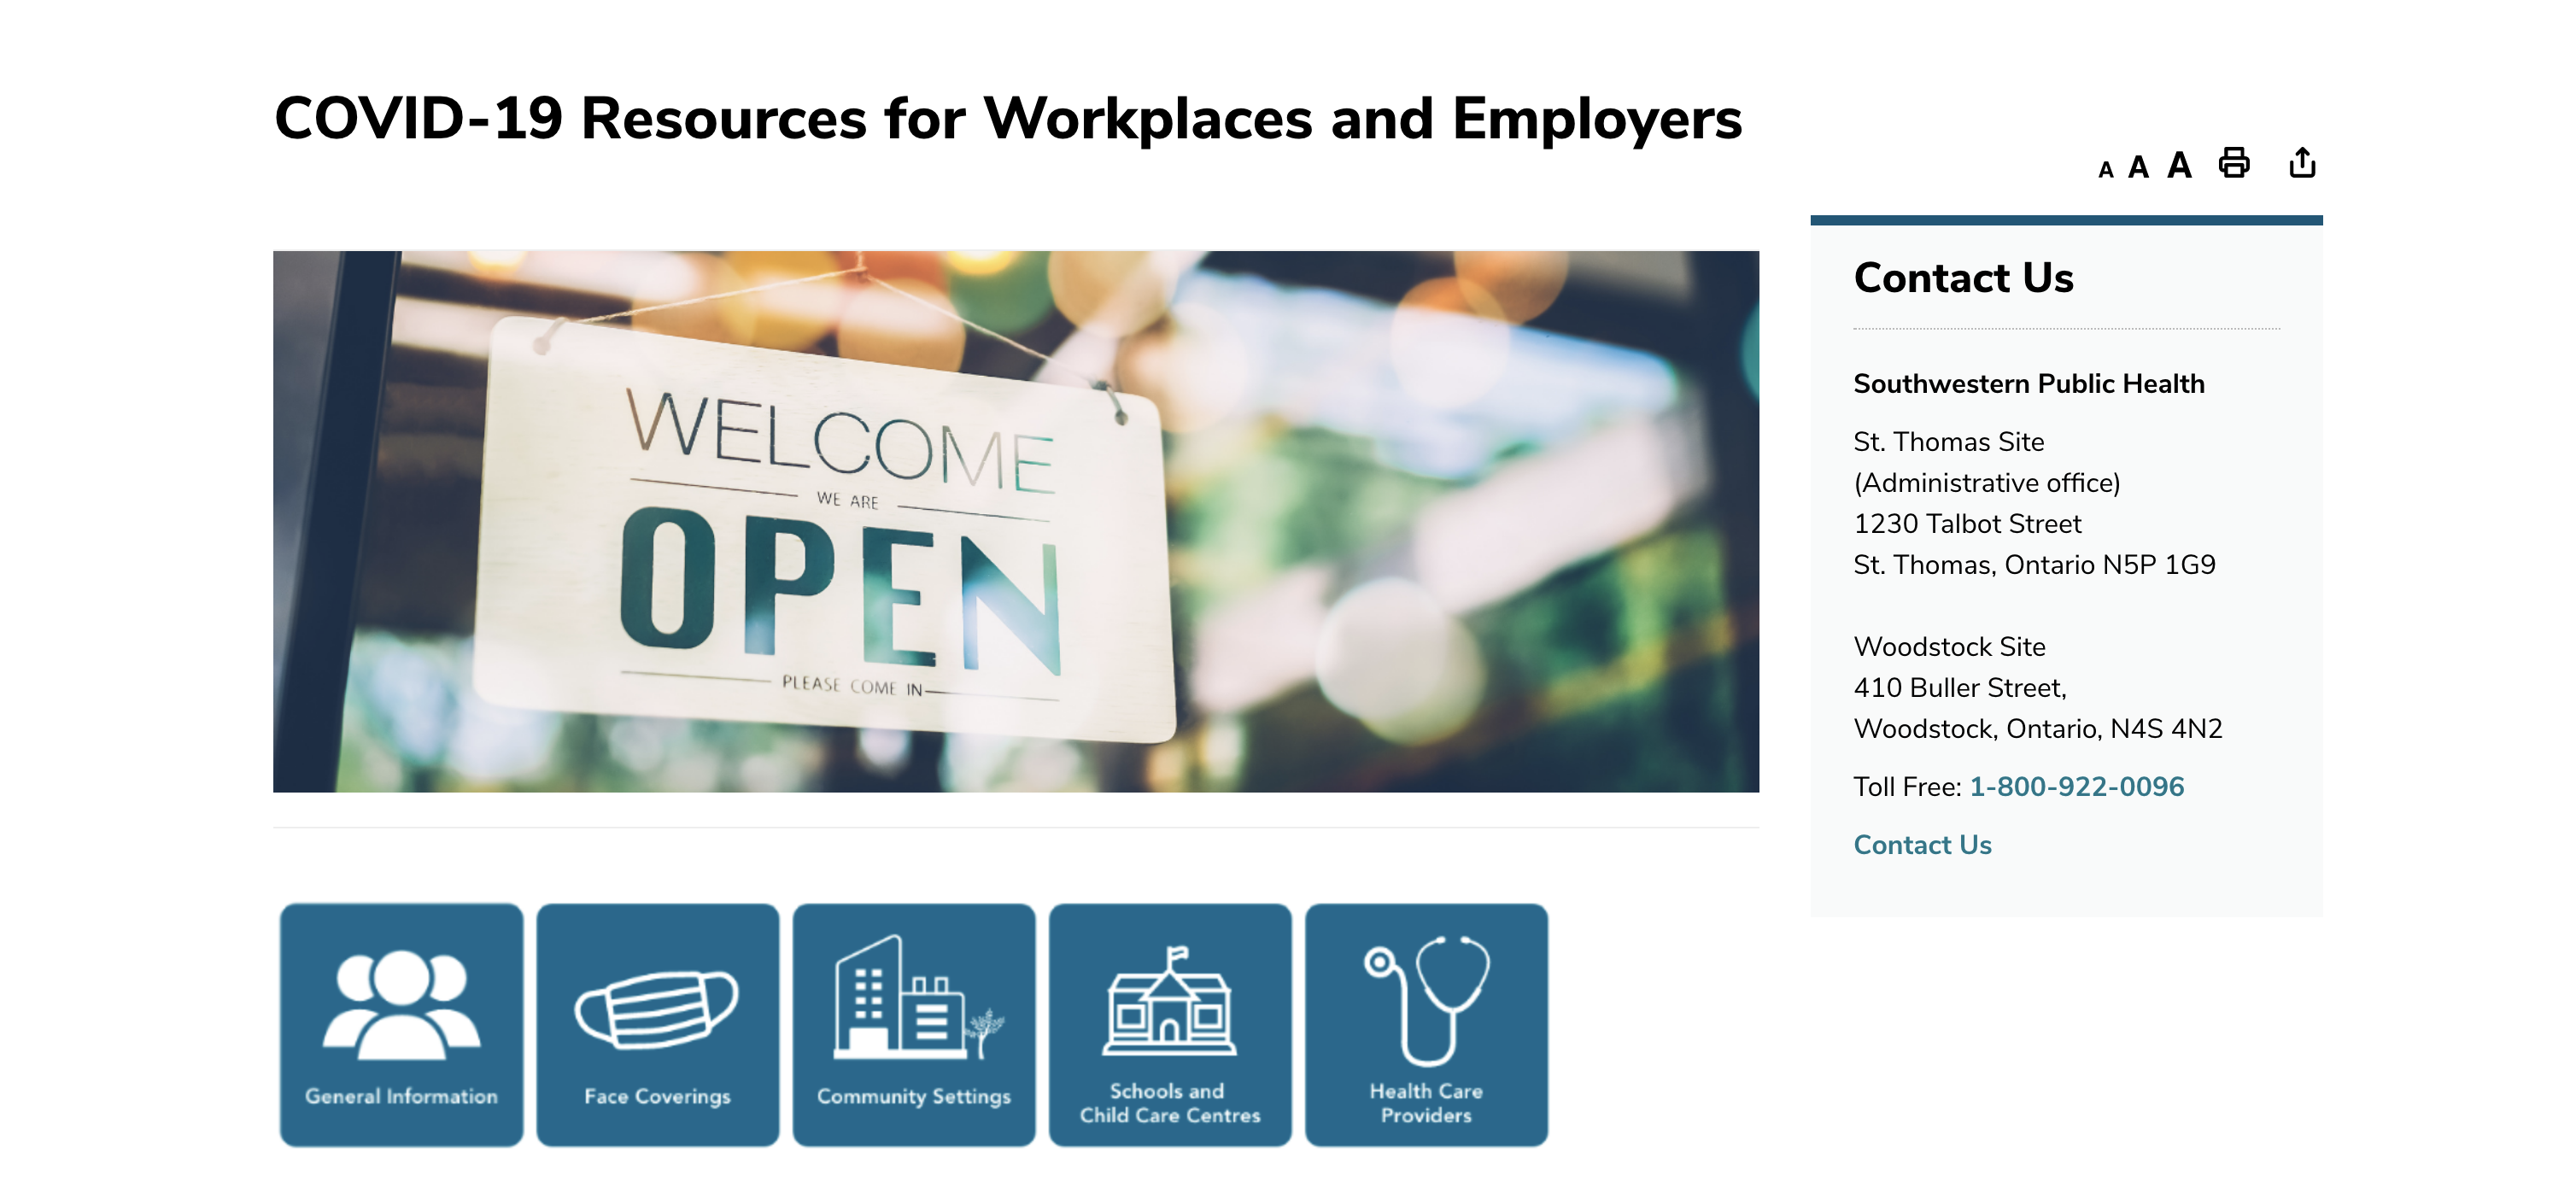 COVID-19 Resources for Workplaces and Employers from Southwestern Public Health SWPH